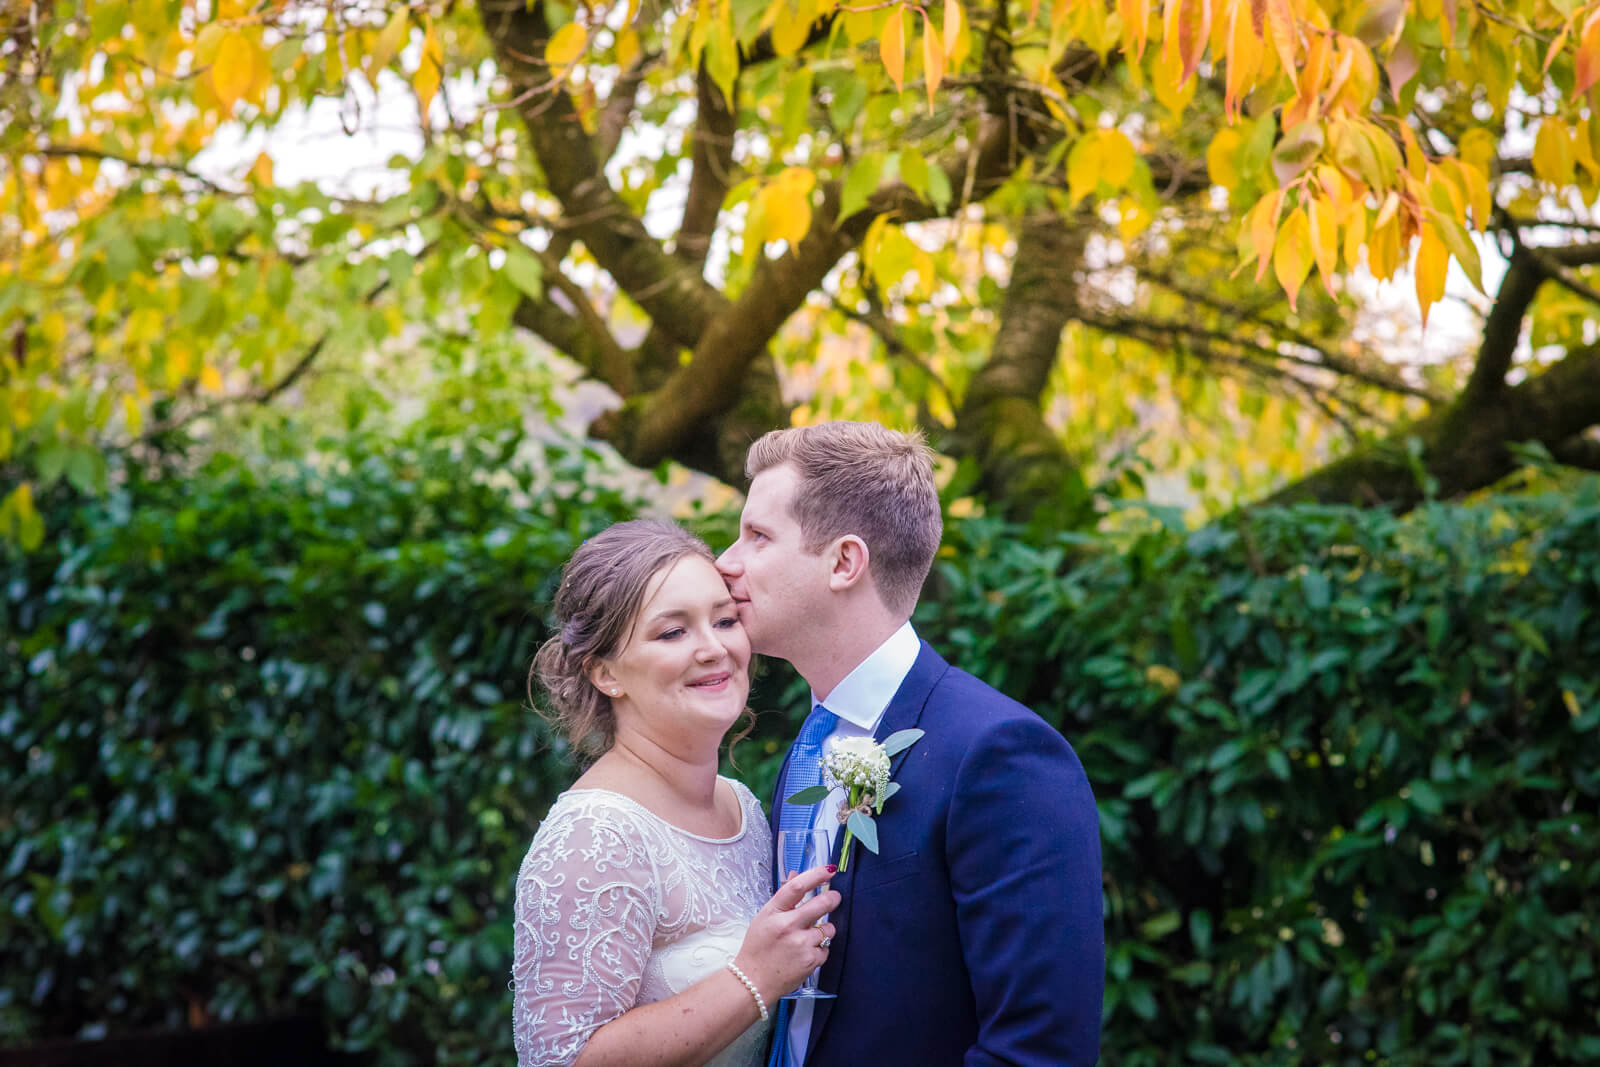 Groom kissing bride on the head infront of a green hedge and a tree with yellow leaves